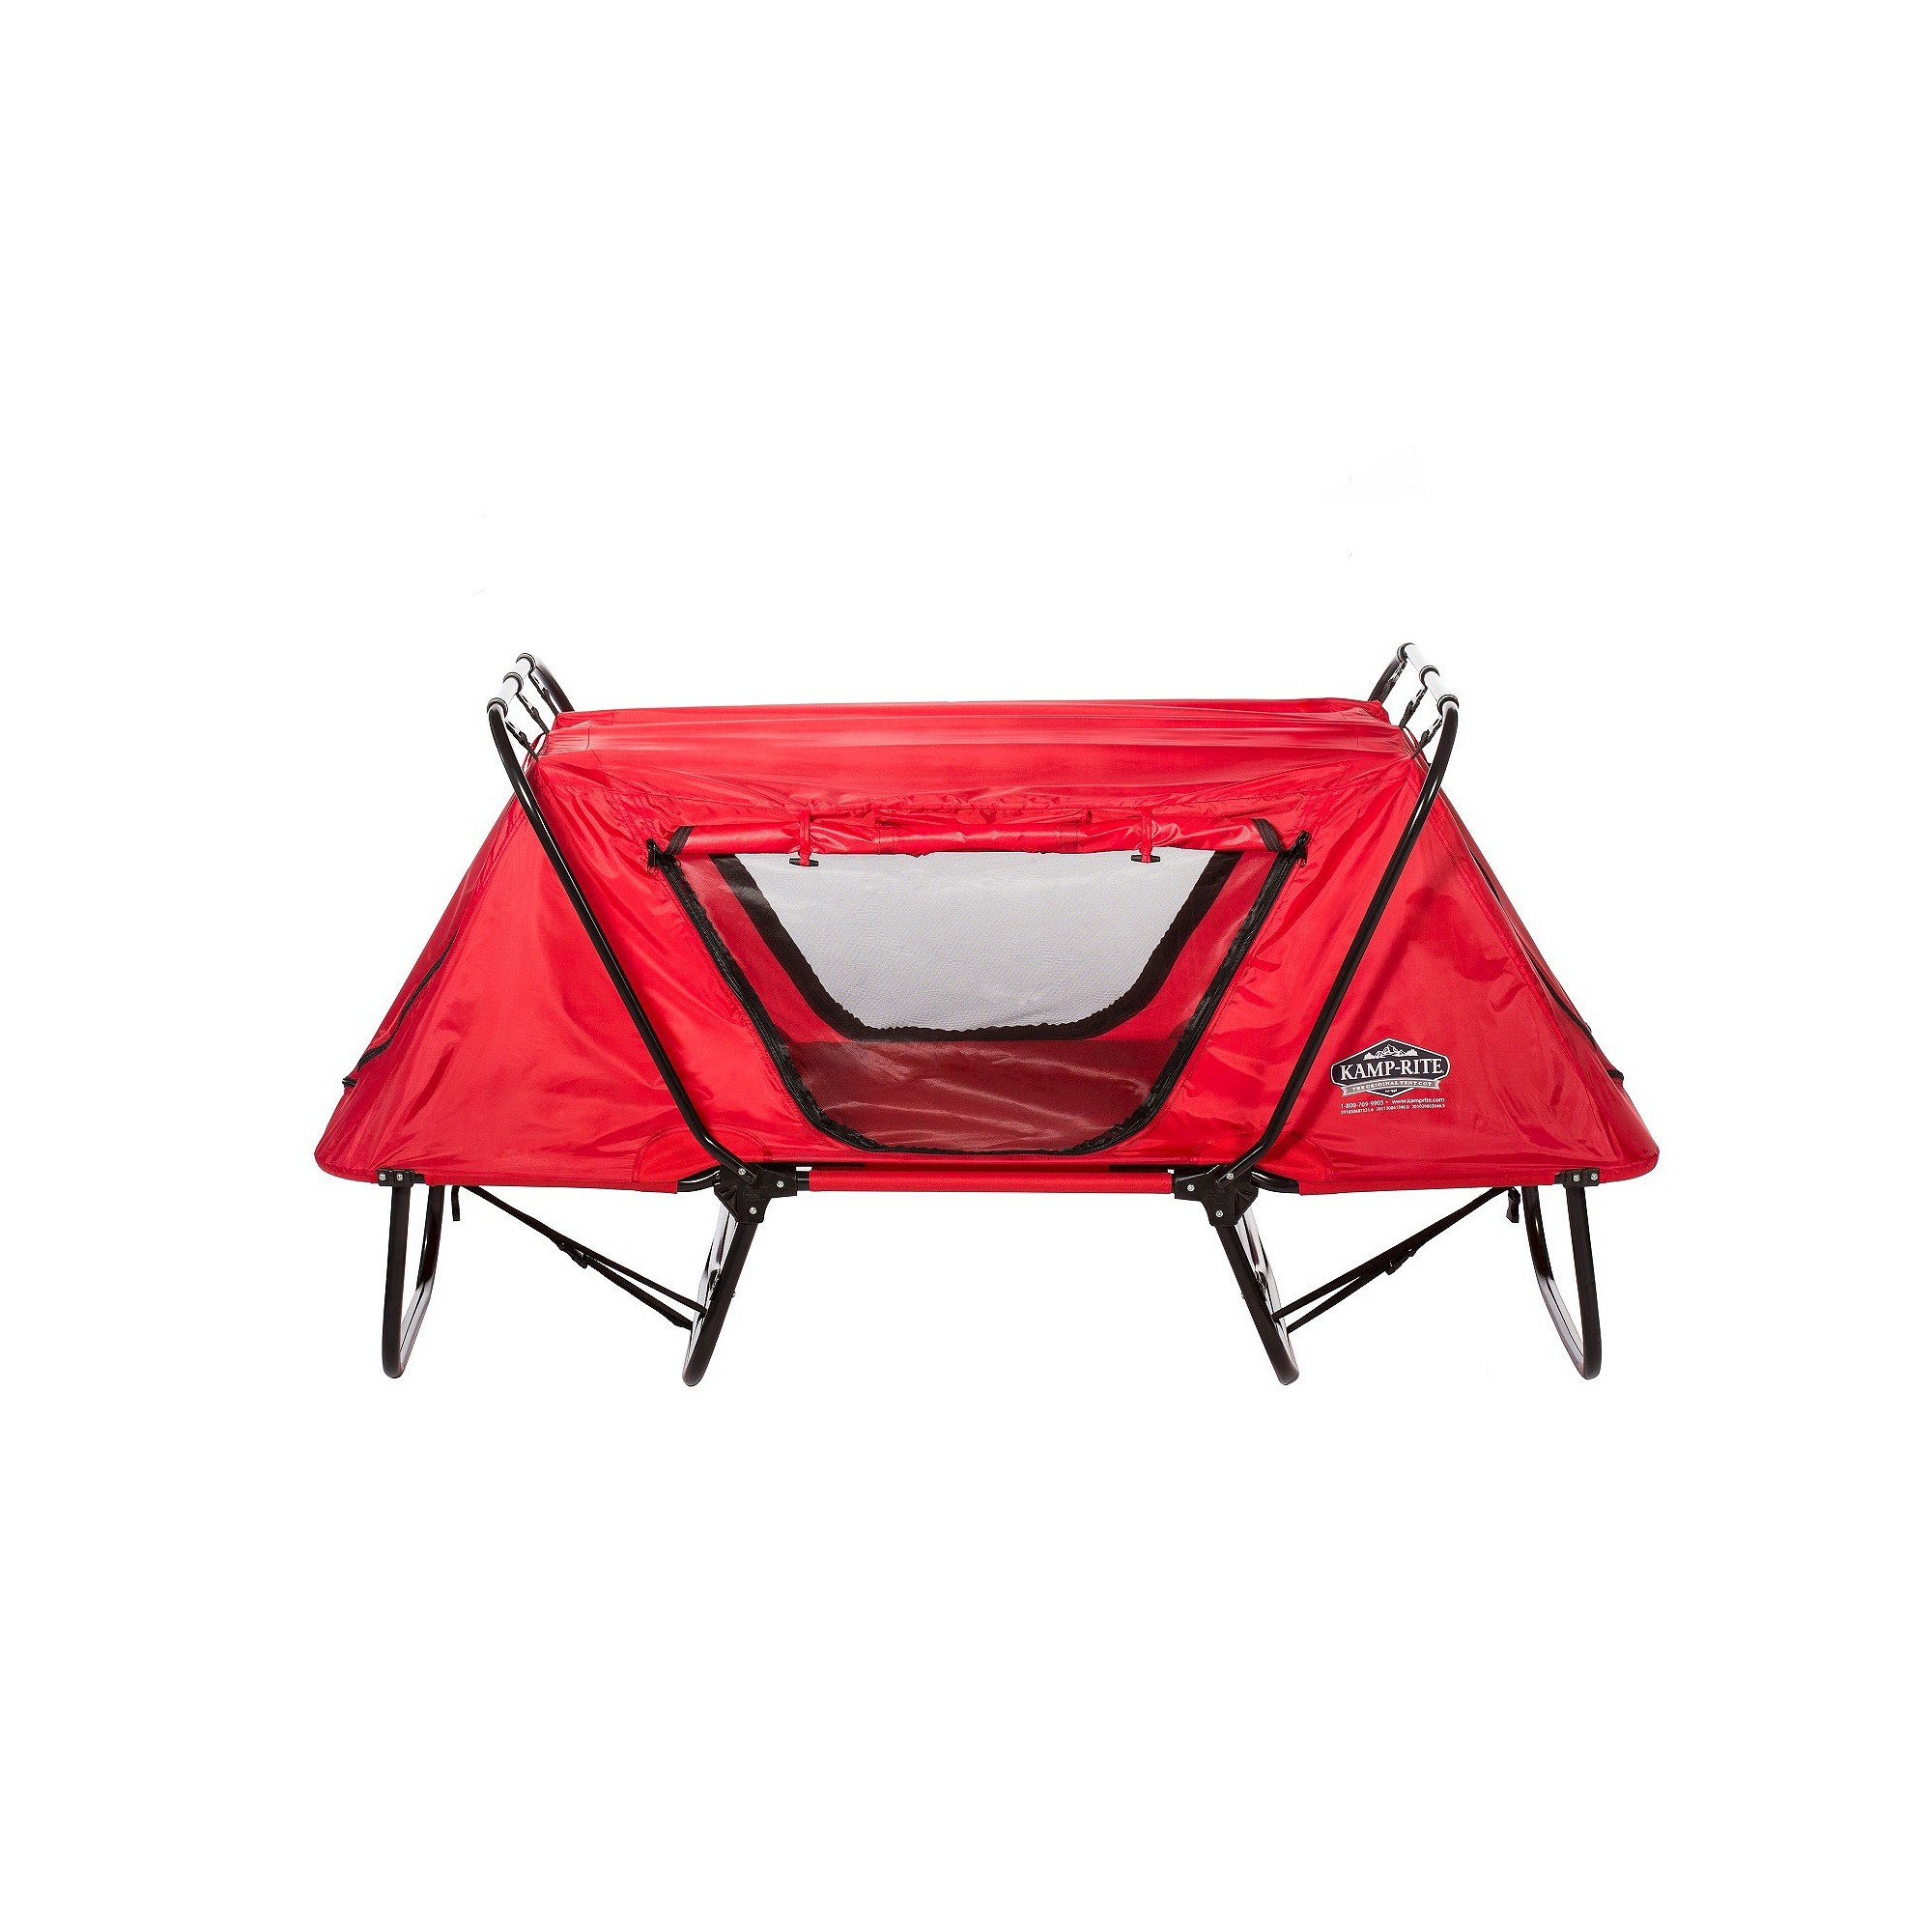 K&-Rite Kidu0027s Tent Cot with Rain Fly - Red  sc 1 st  Pinterest & Kamp-Rite Kidu0027s Tent Cot with Rain Fly - Red | Tent cot Rain fly ...